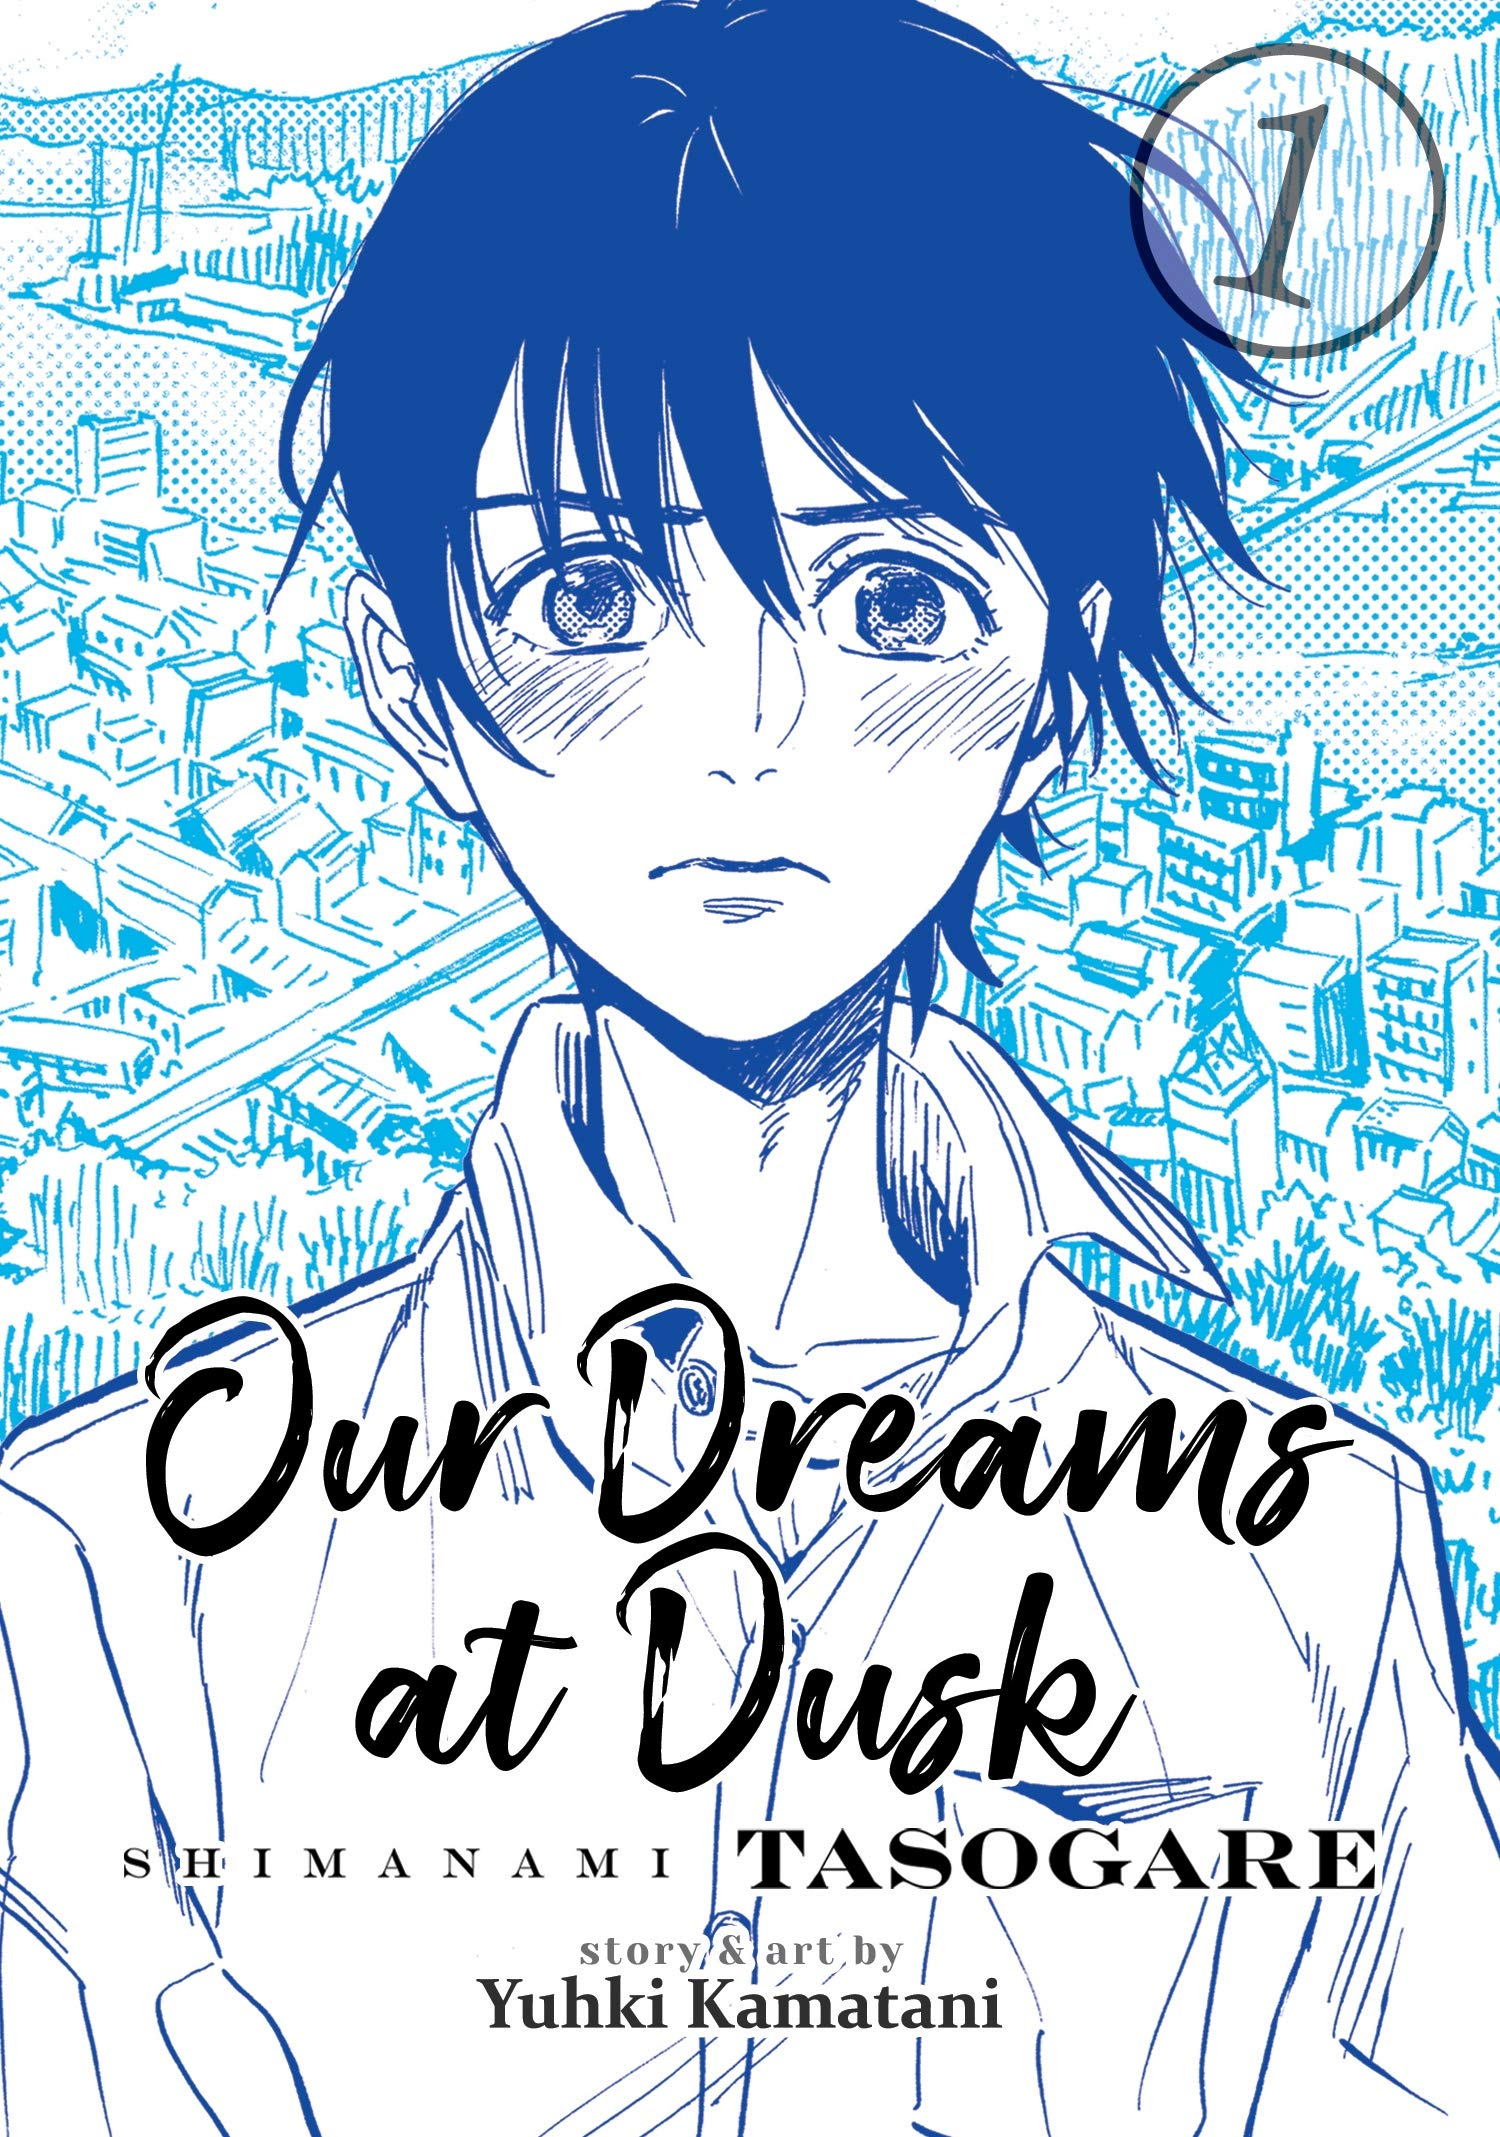 Best Comics of 2019: Our Dreams At Dusk